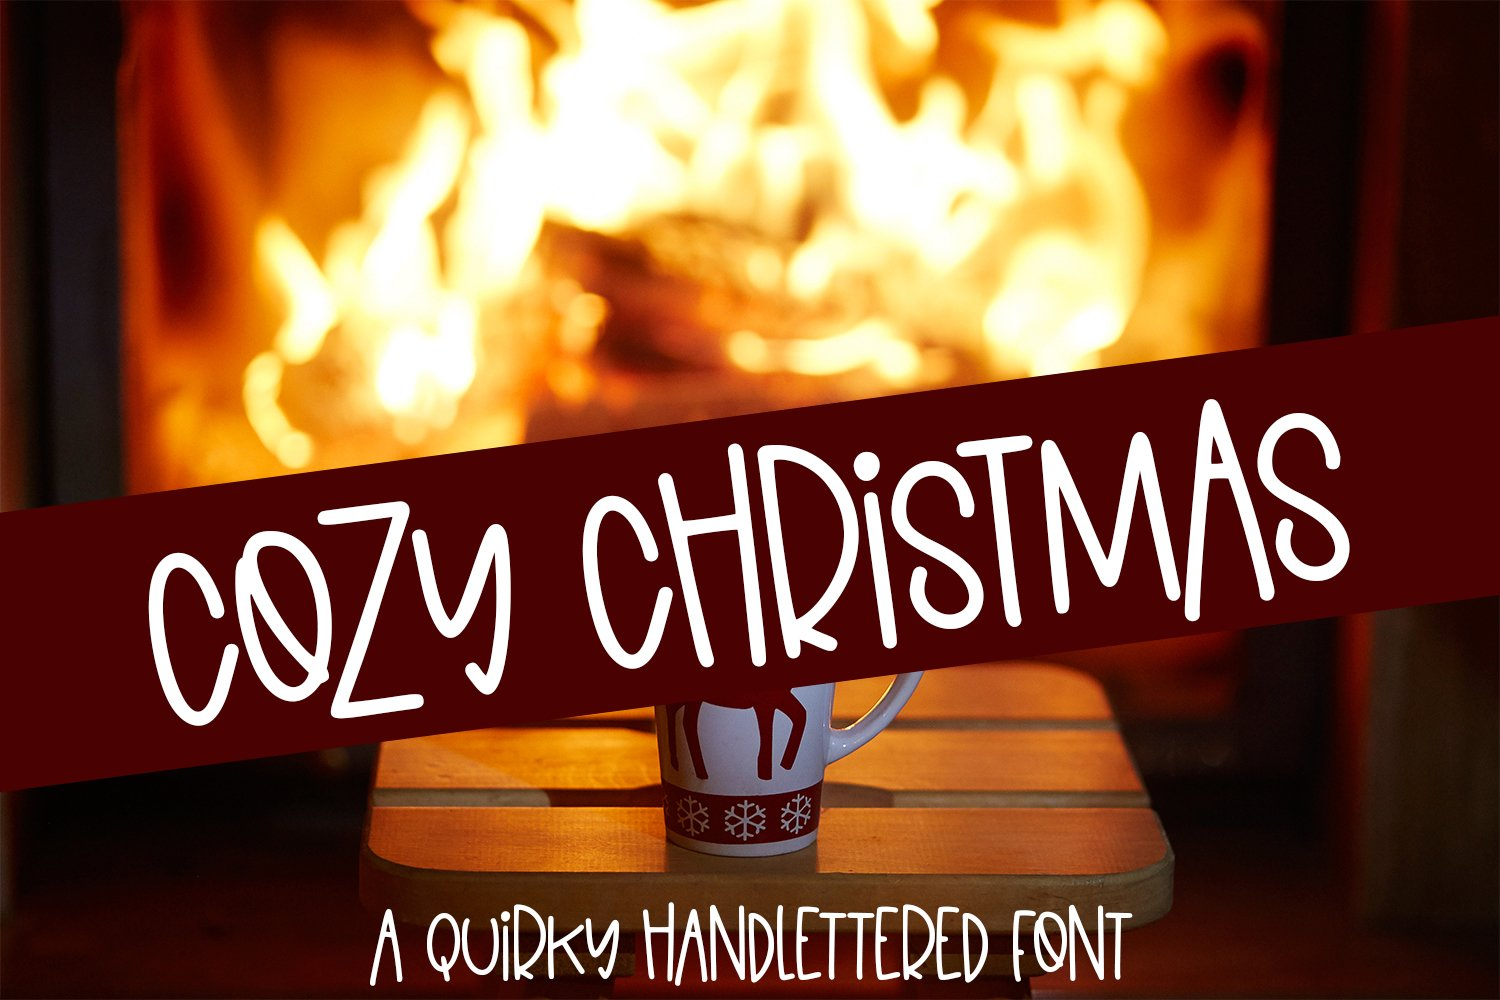 Cozy Christmas - A Quirky Hand-Lettered Font example image 1